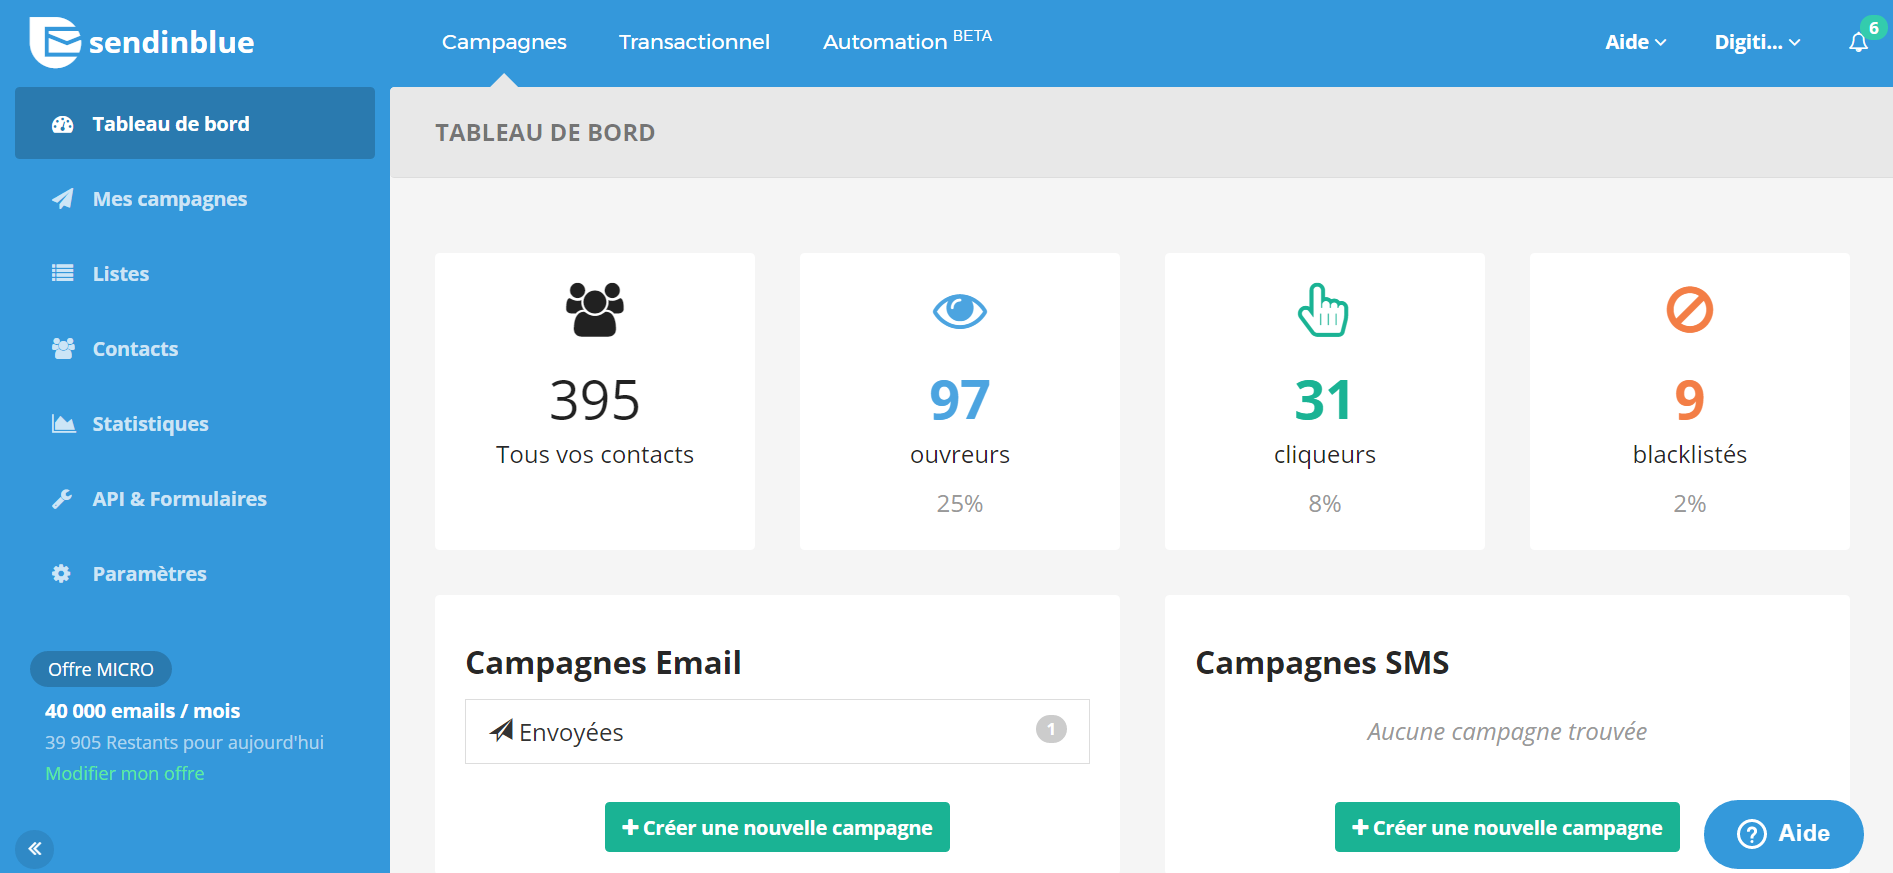 SendinBlue - Meilleure alternative Mailchimp